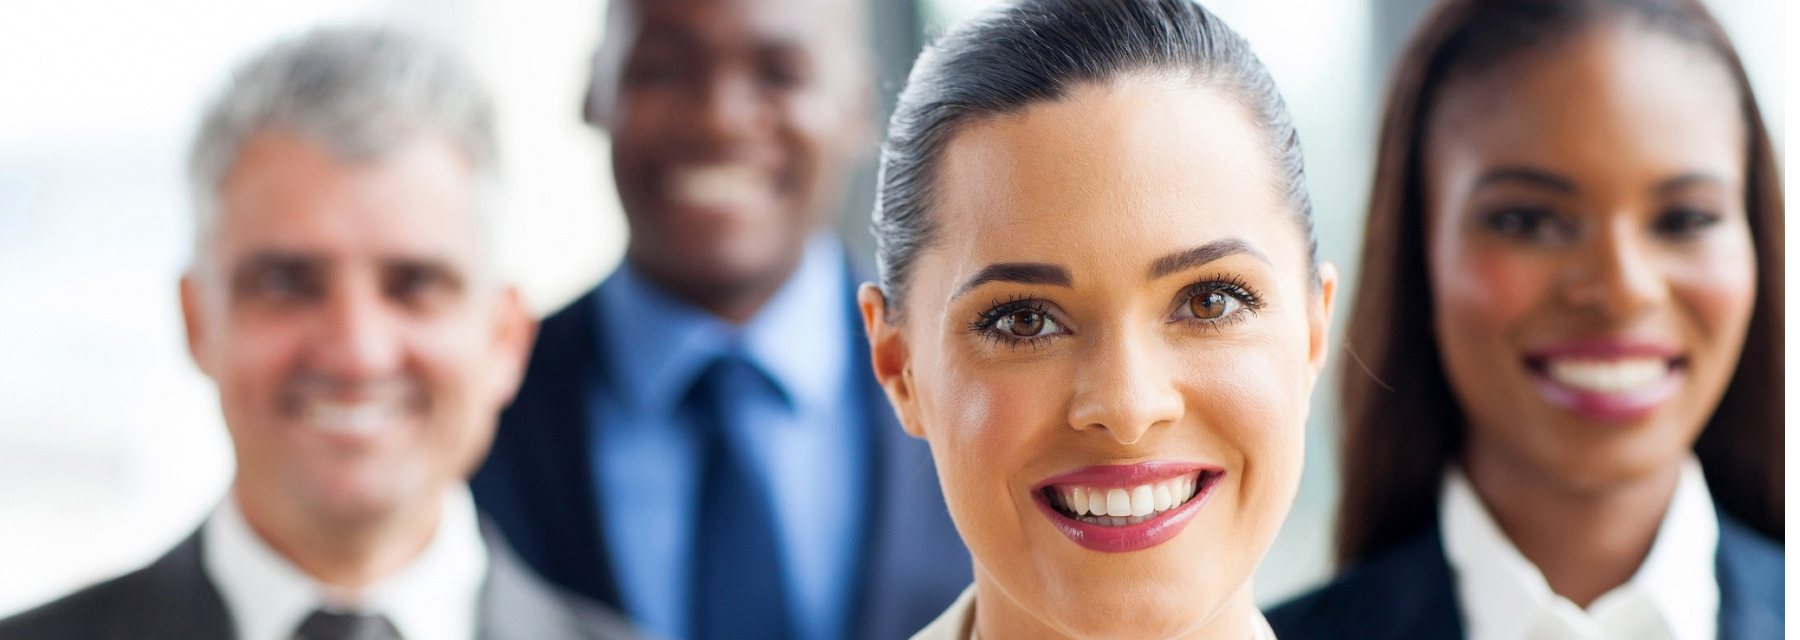 close up of business professionals smiling